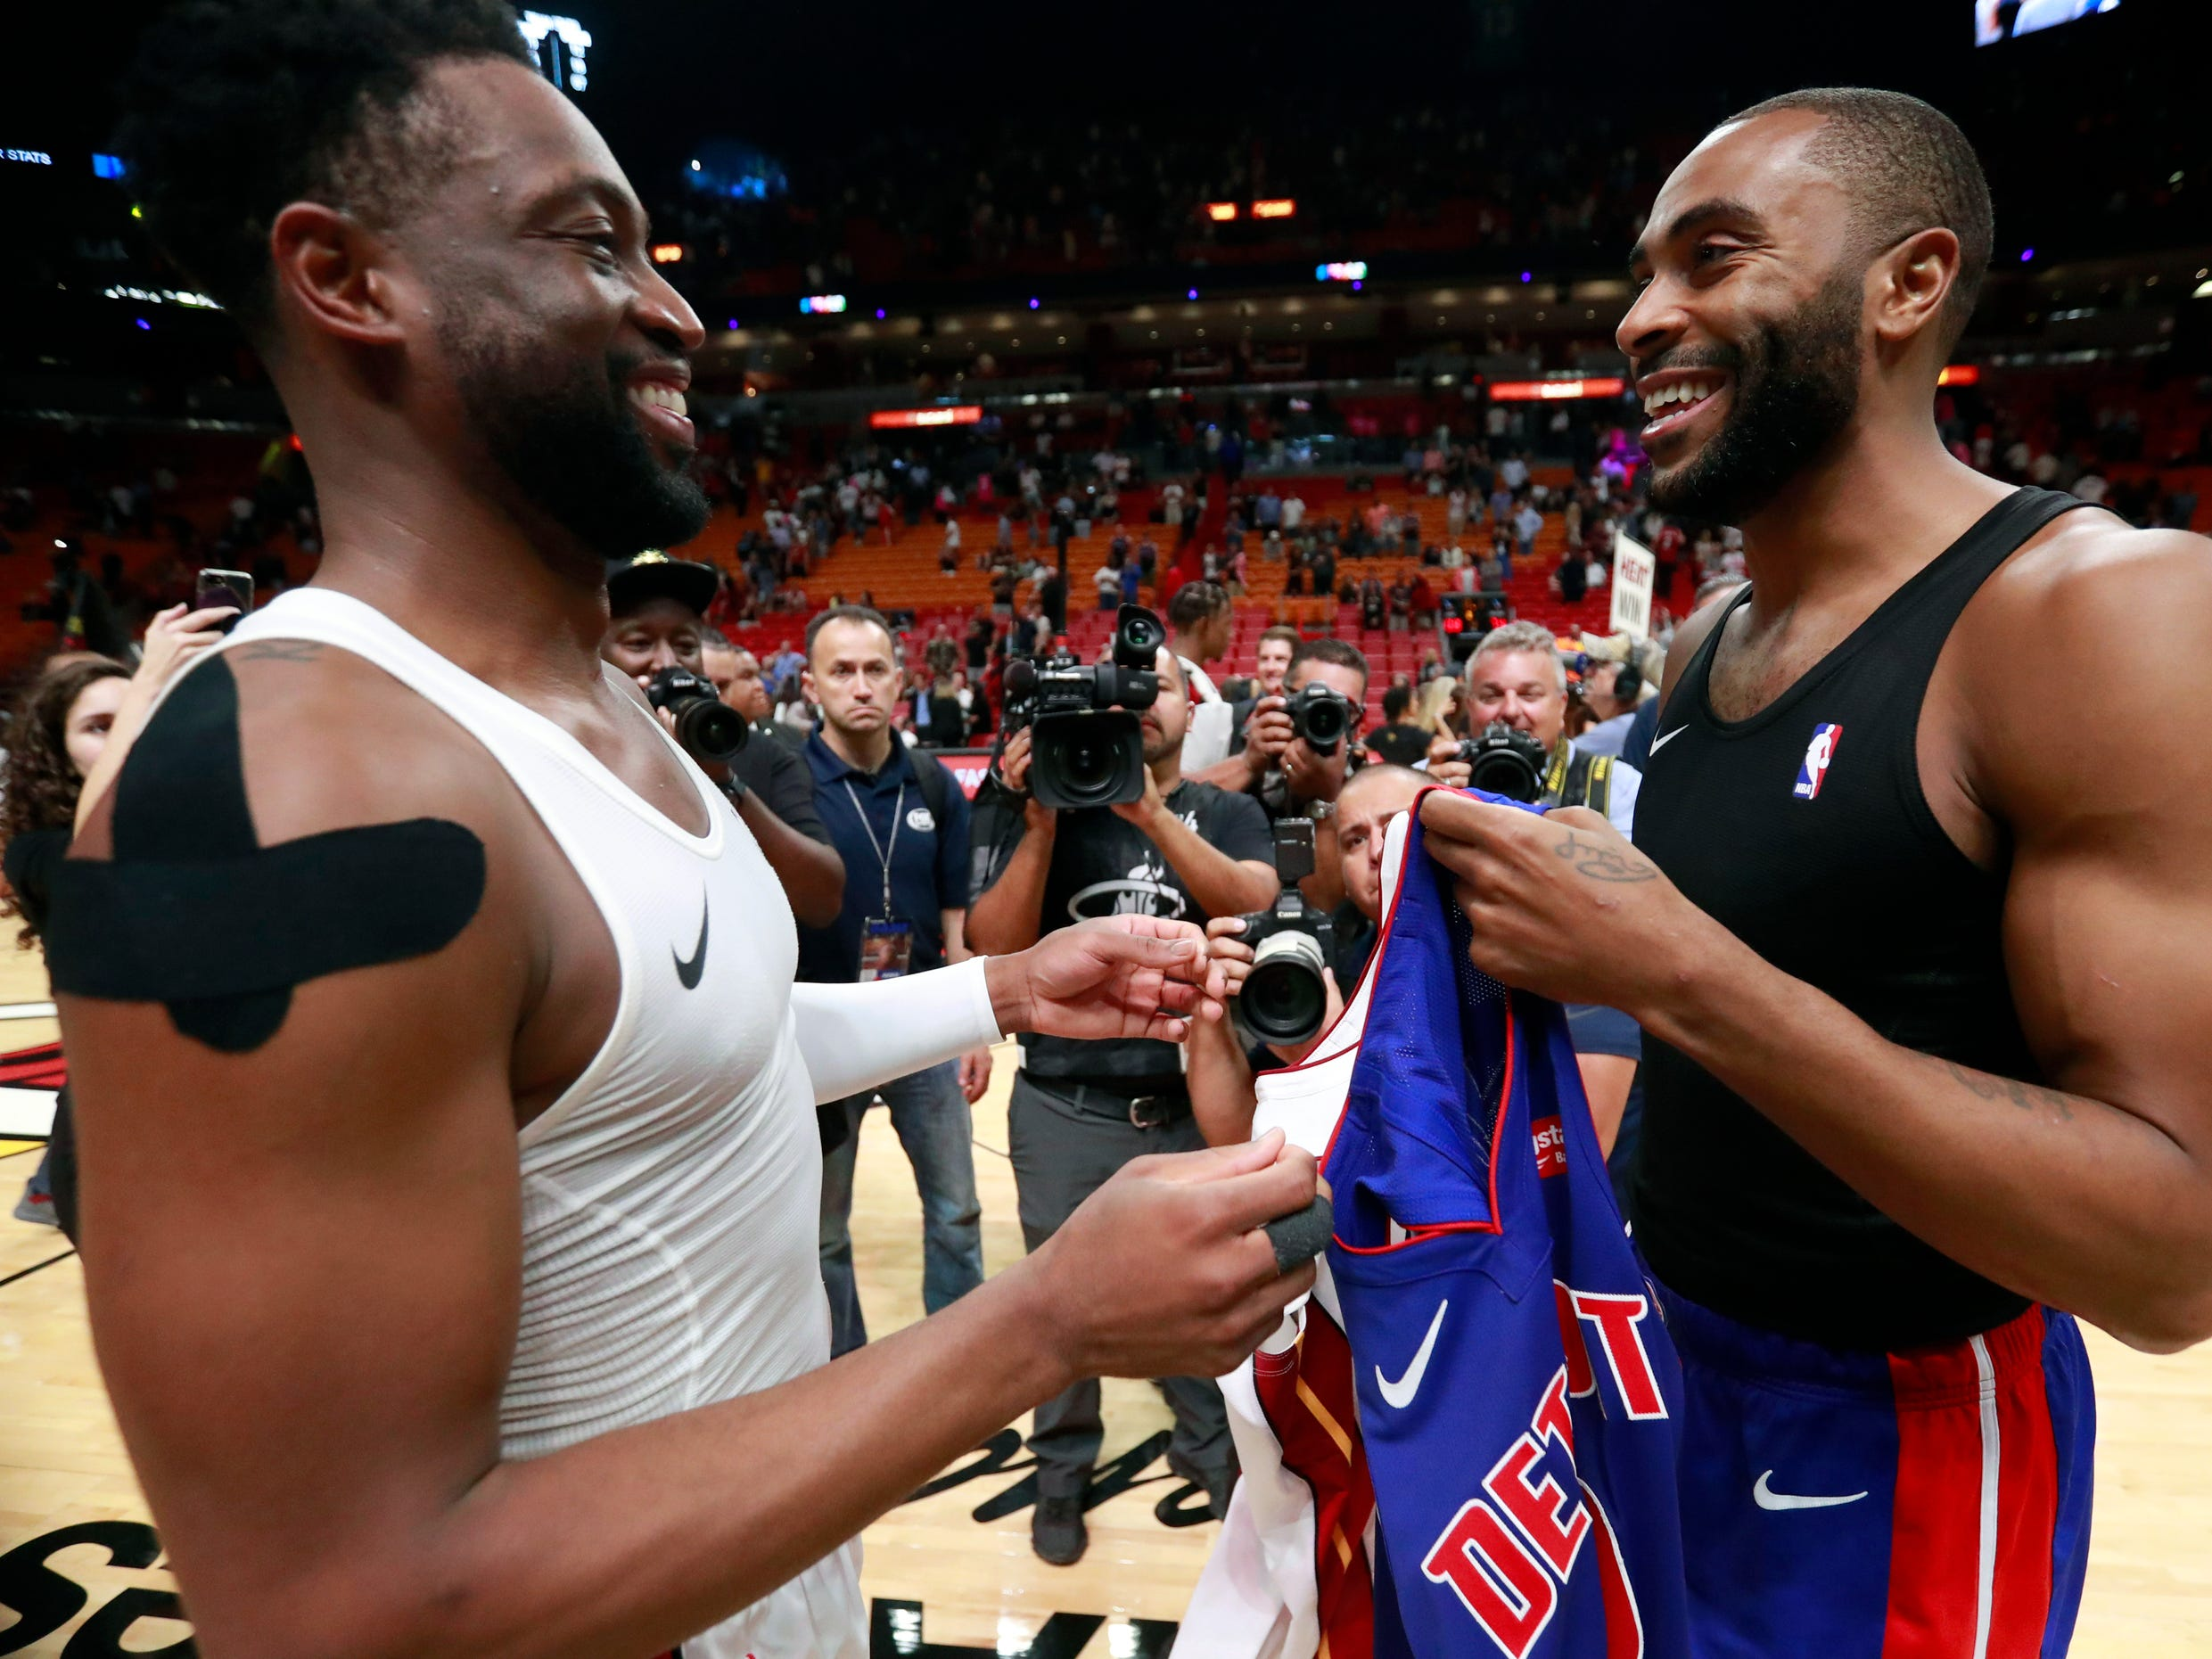 Miami Heat guard Dwyane Wade, left, and Detroit Pistons guard Wayne Ellington smile as they exchange jerseys after the game.